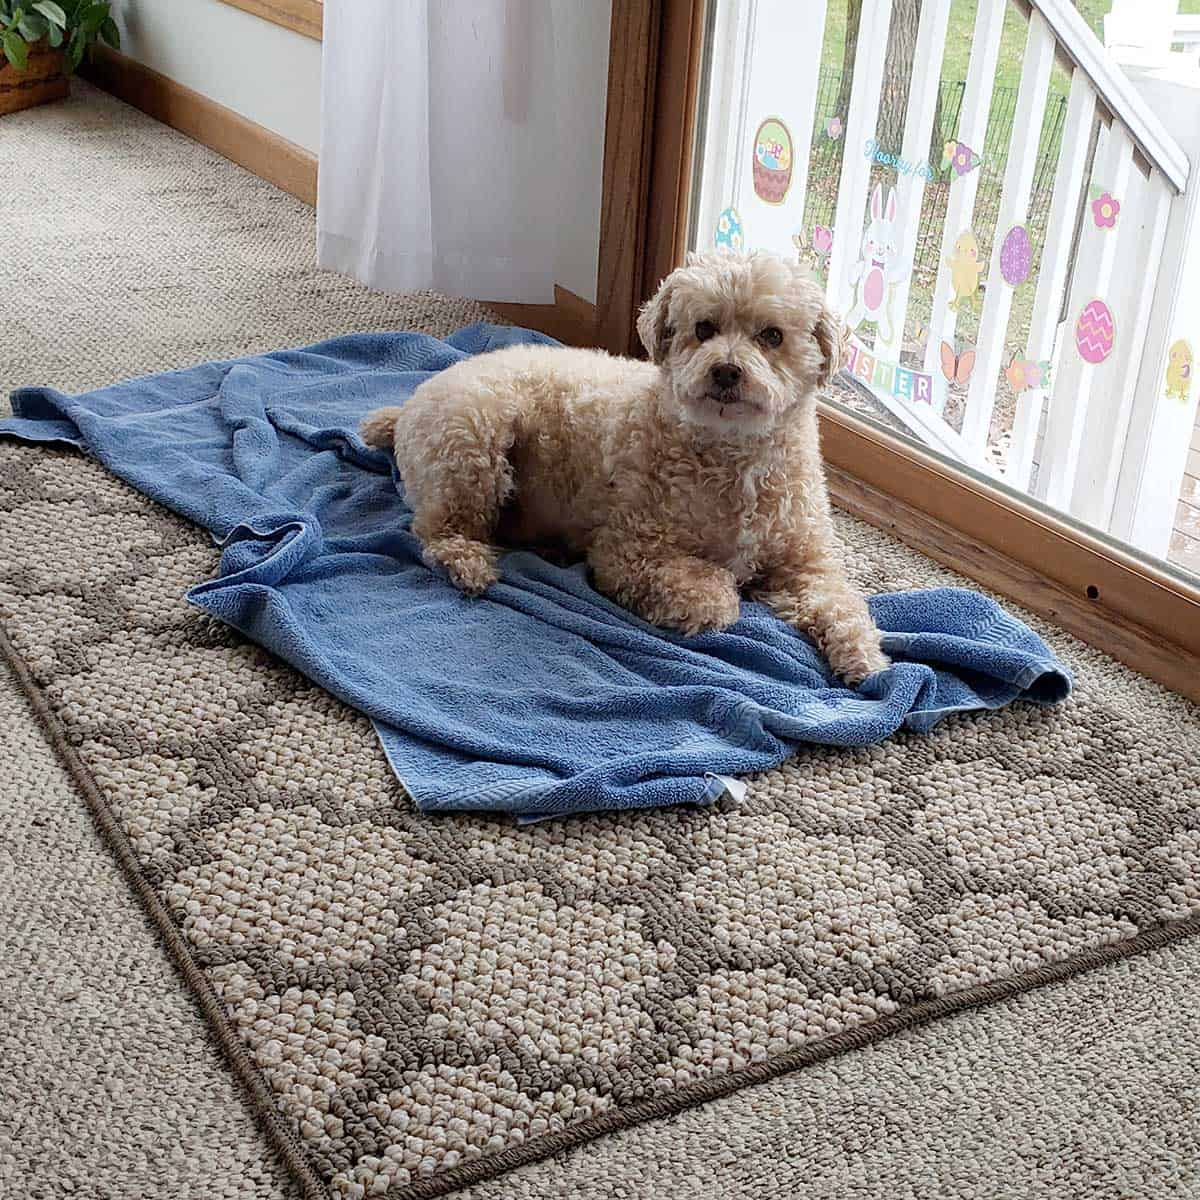 Mickey the dog on a towel